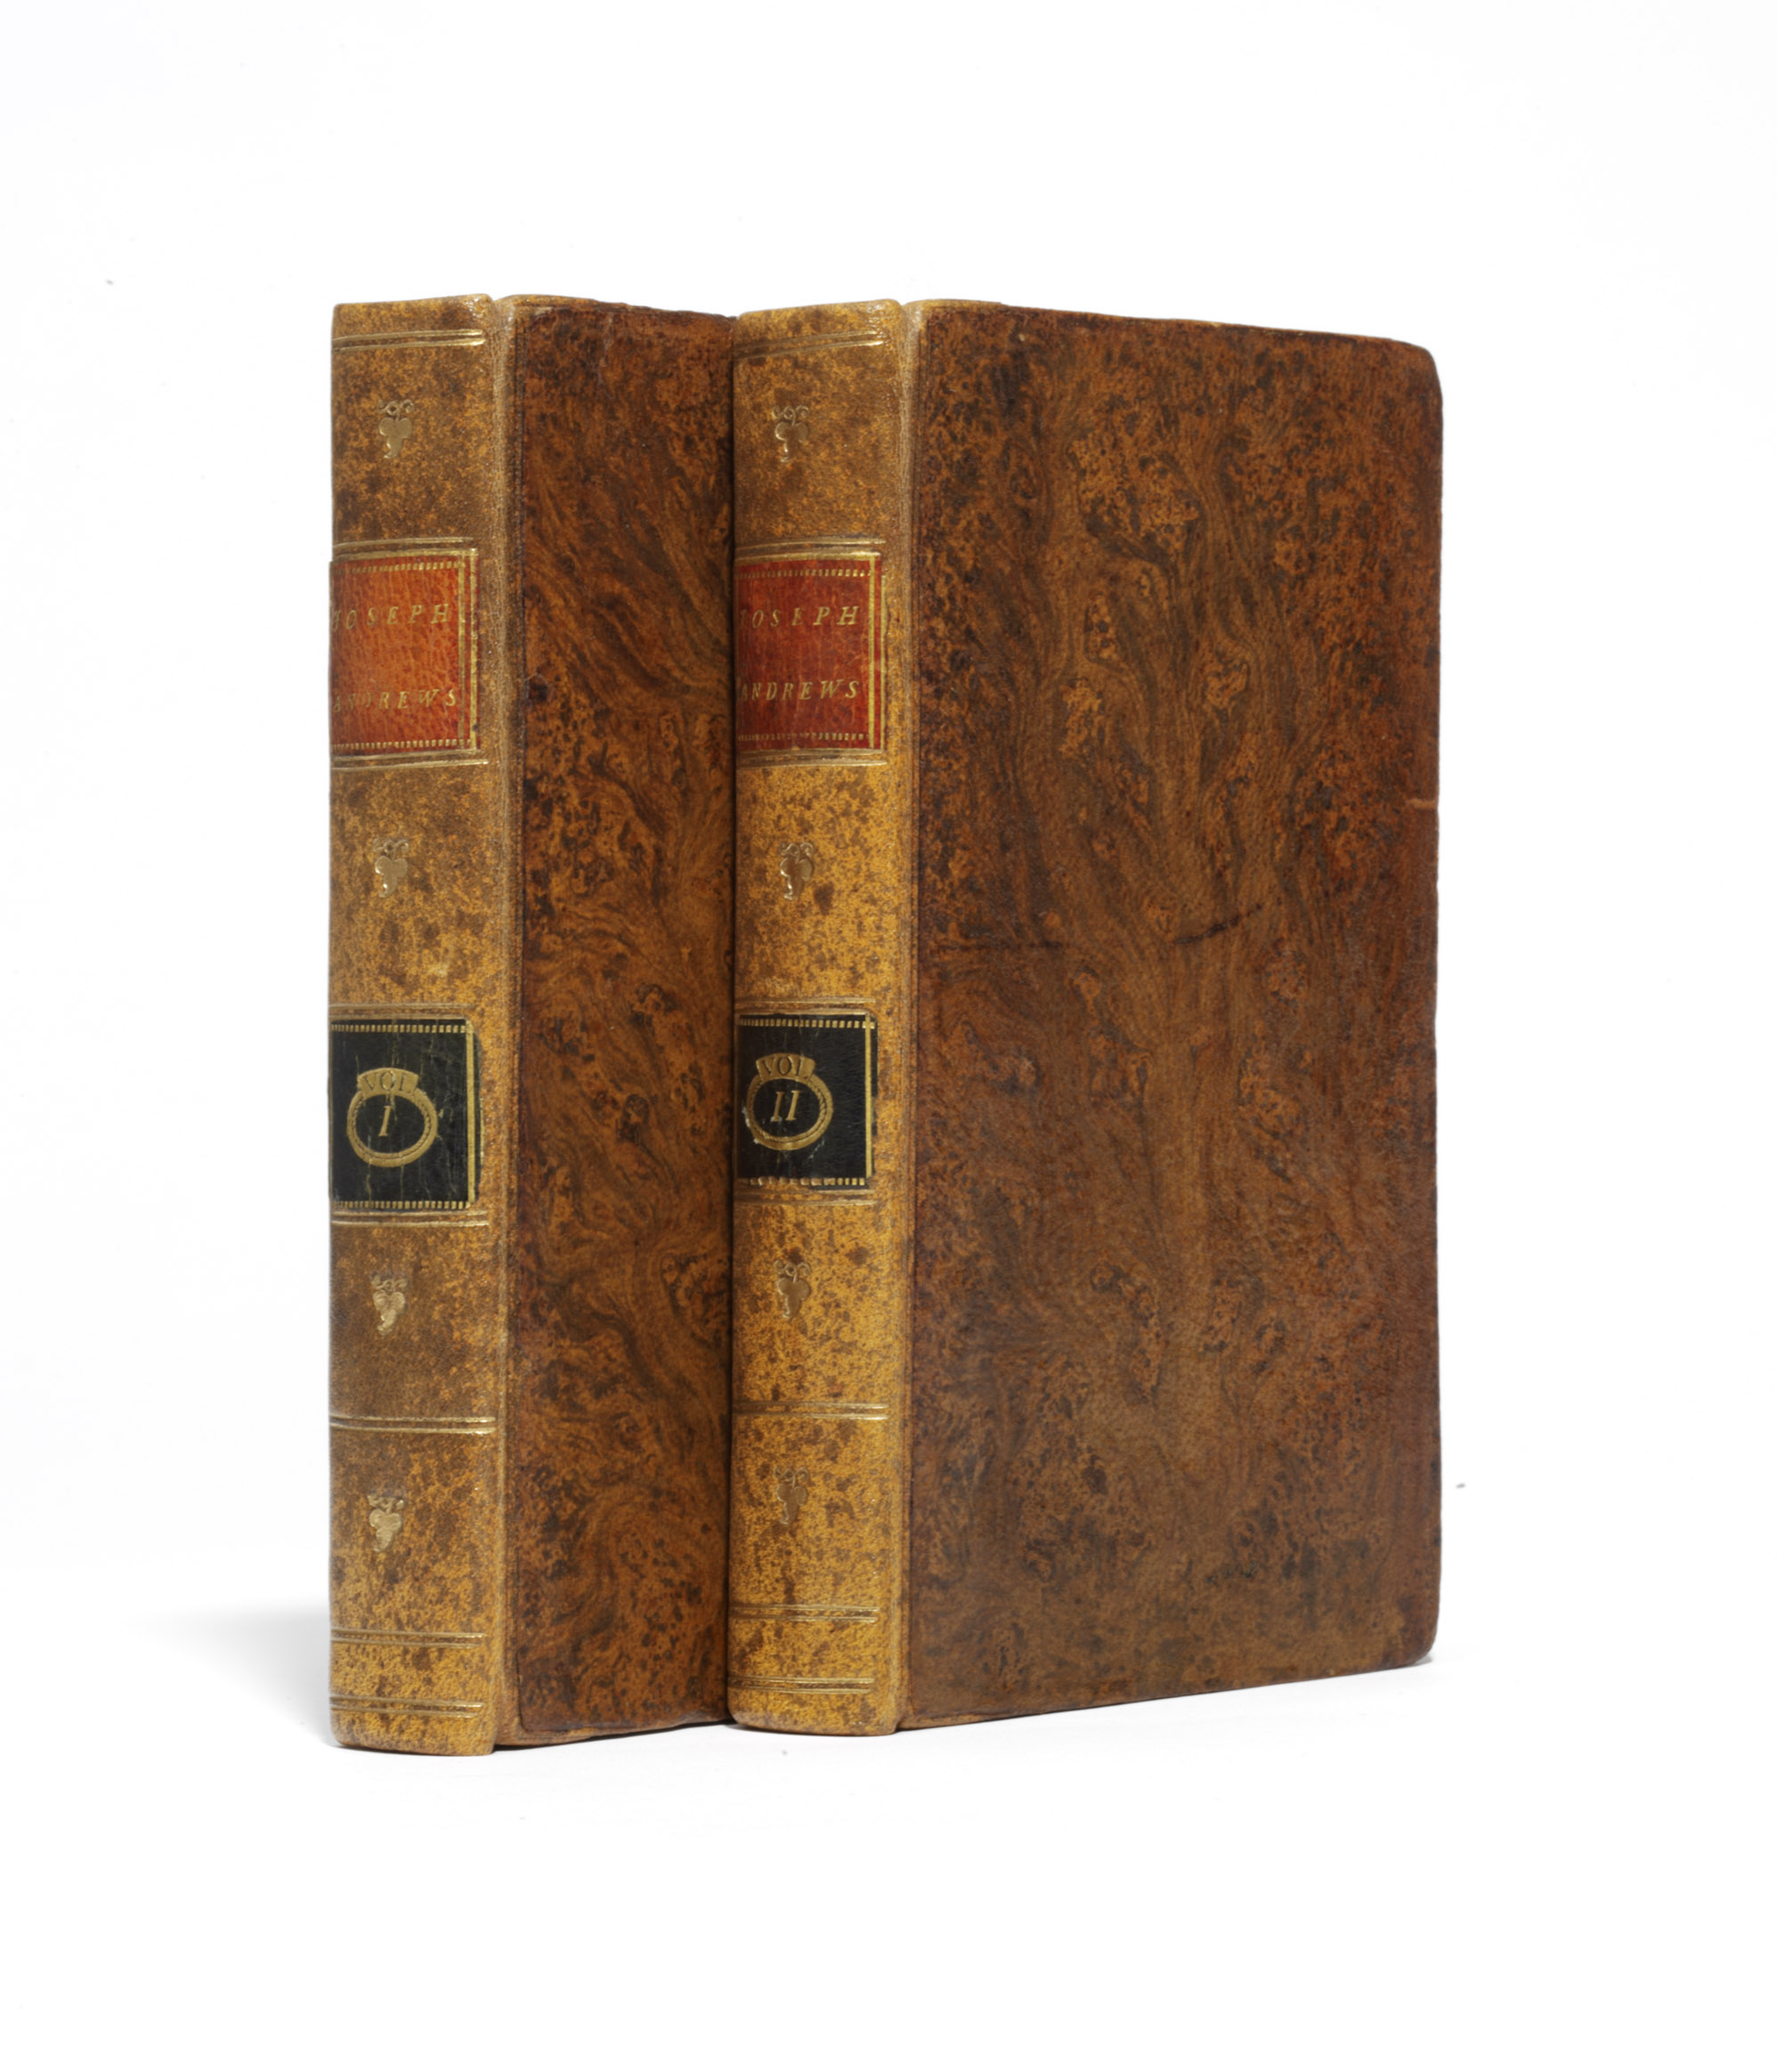 FIELDING, Henry (1707-1754). The History of the Adventures of Joseph Andrews. London: A. Millar, 1742. 2 vols., 12° (154 x 90mm). (Occasional light soiling, vol. II without preliminary advertisement leaf.) Contemporary tree sheep (rebacked, preserving old lettering-pieces, some neat repairs to covers). Provenance: 'Wm. Cooke after 1767' (partially erased inscription on title) -- J. Wyndham (1951 inscription on front endpapers).